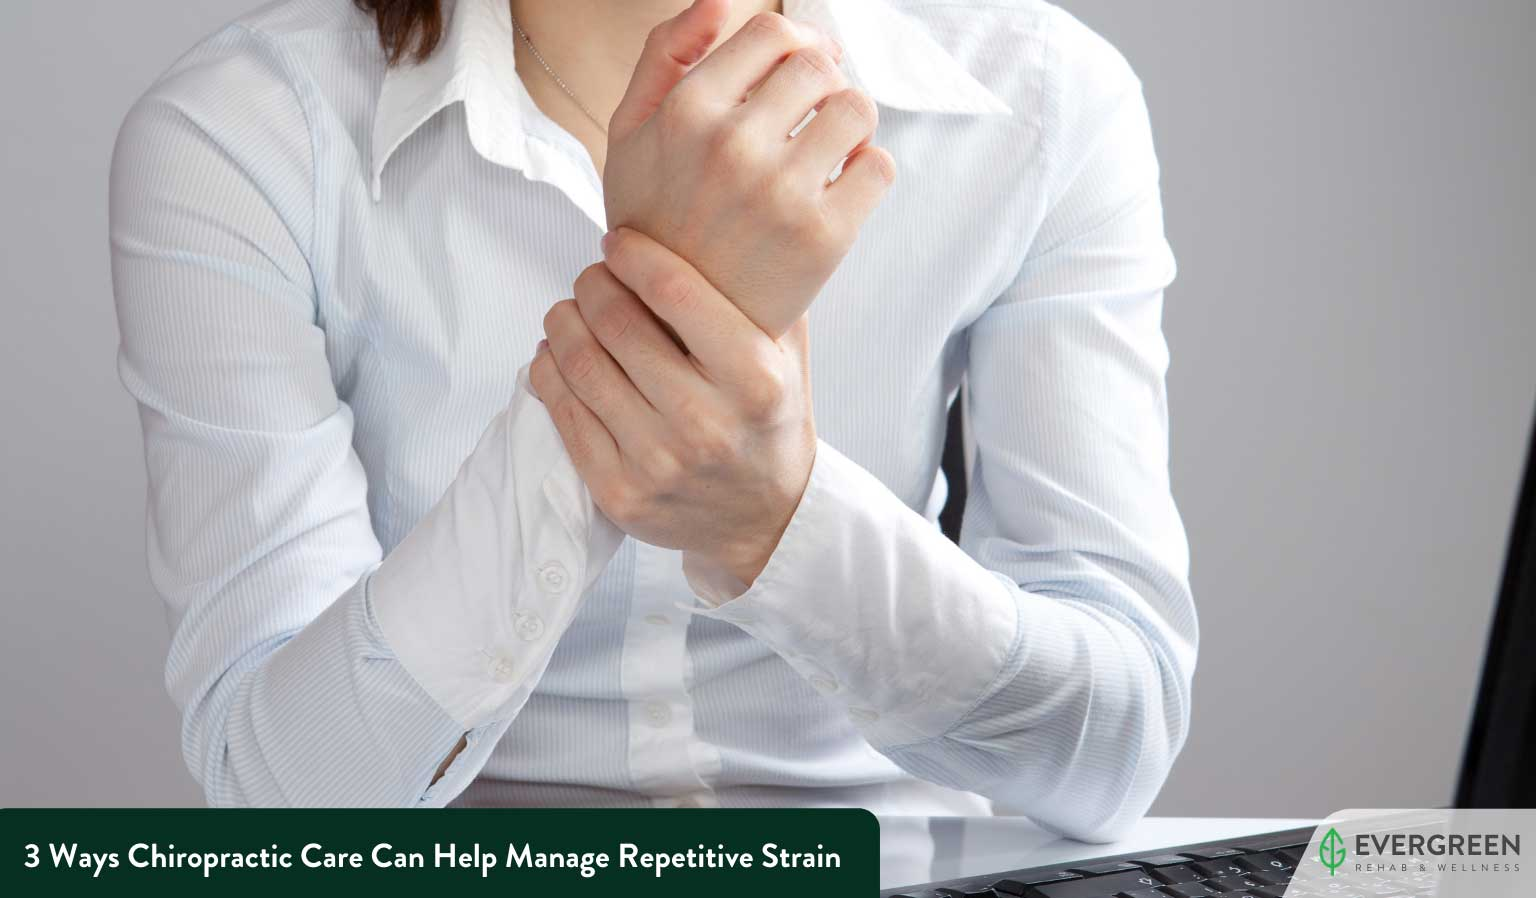 3 Ways Chiropractic Care Can Help Manage Repetitive Strain